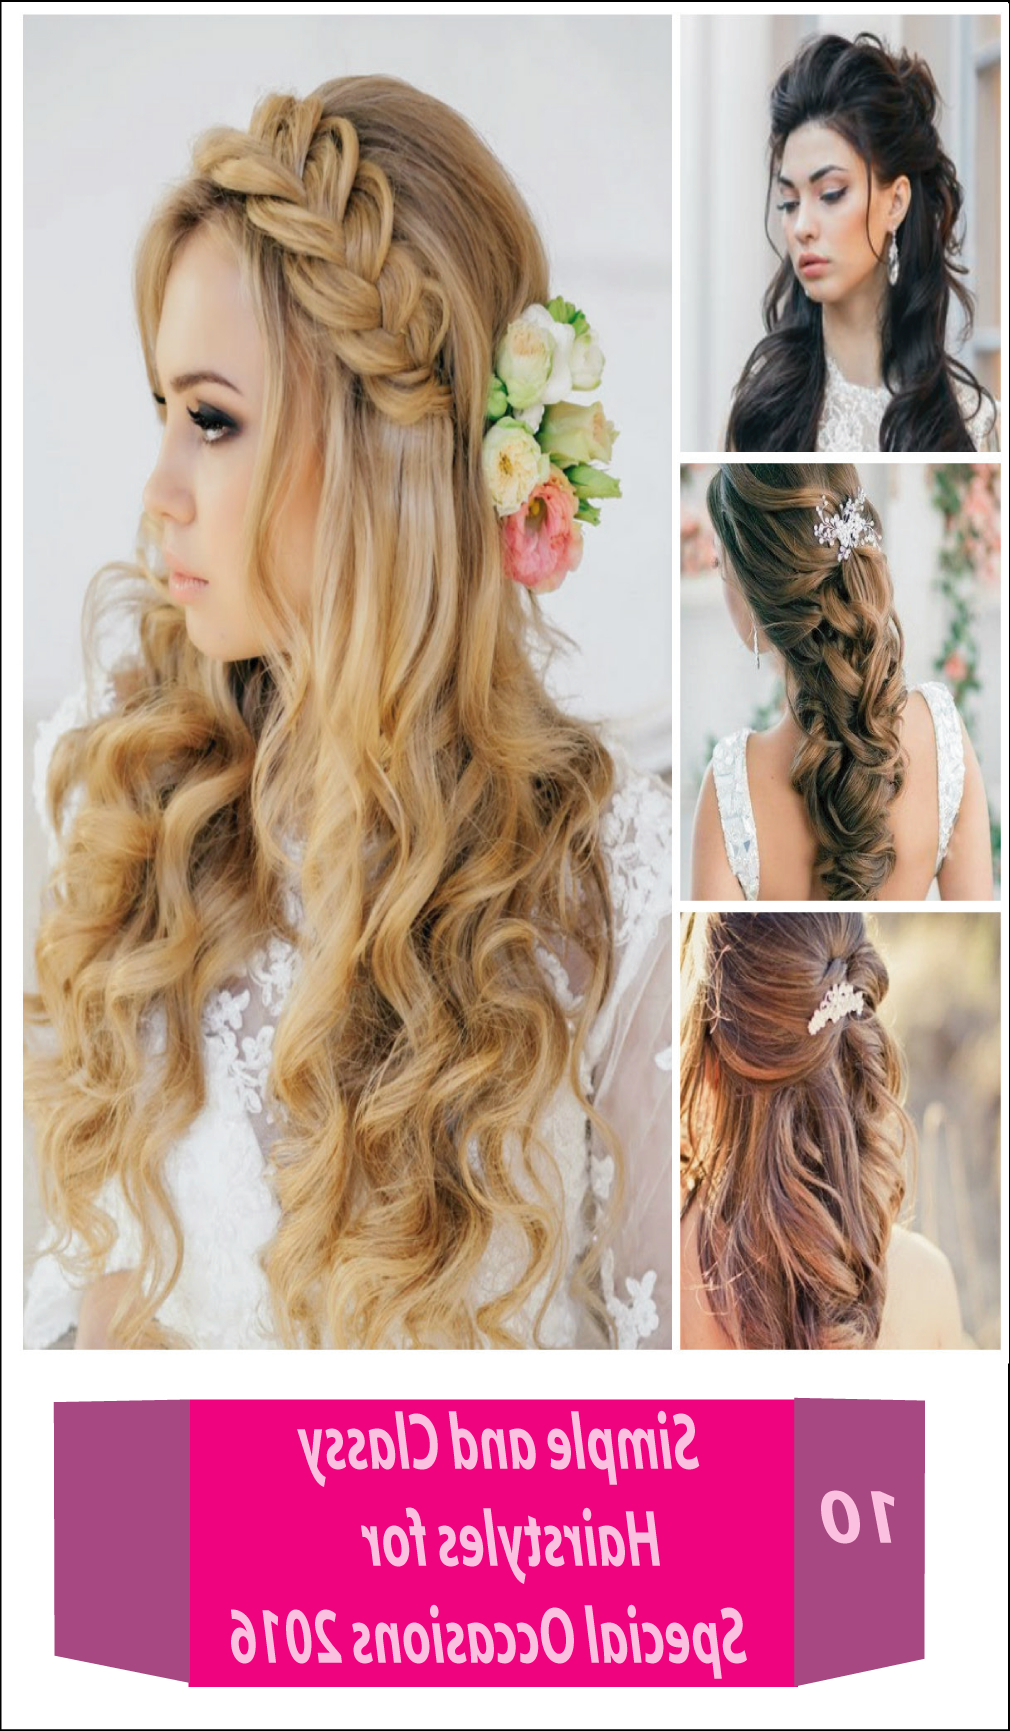 10 Easy And Simple Classy Hairstyles For Special Occasions Throughout Popular Medium Hairstyles Formal Occasions (Gallery 2 of 20)